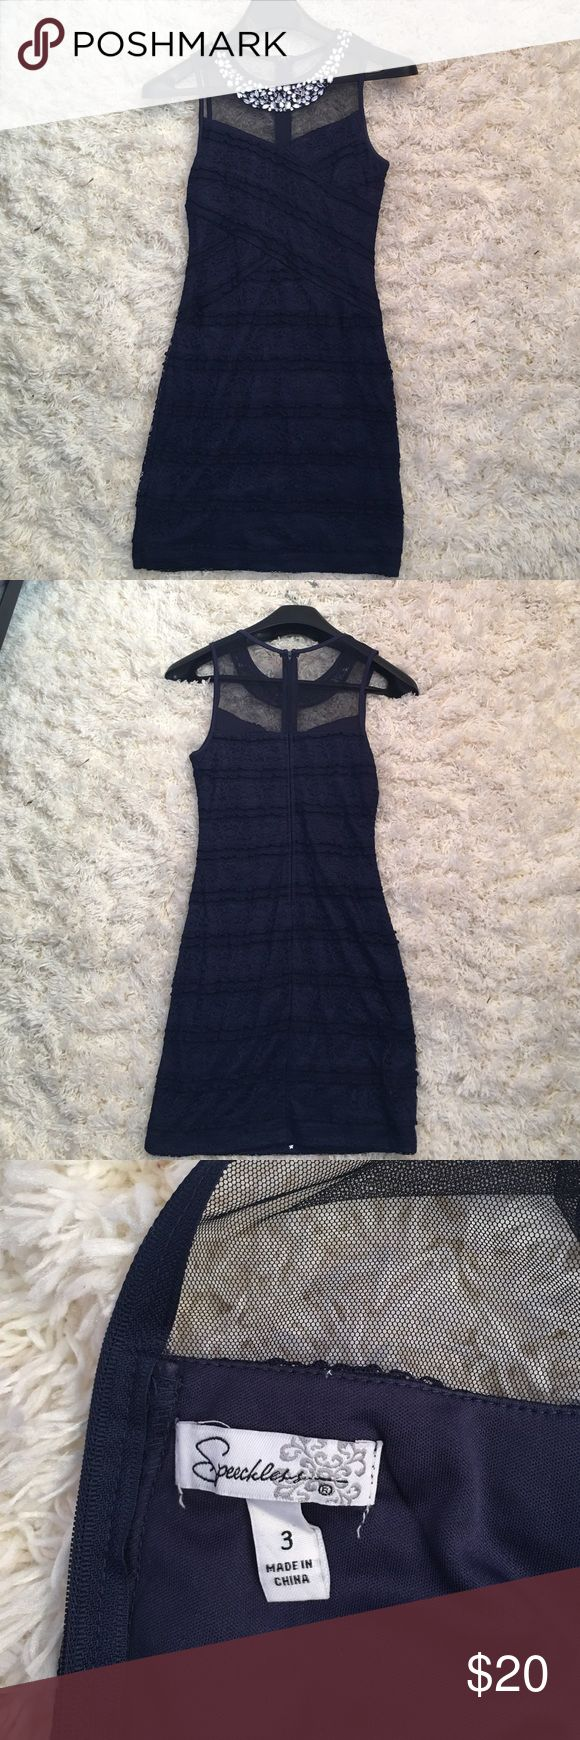 Homecoming Dress Navy bodycon dress with mesh and jeweled neckline! Worn once for homecoming! Lace type material for the body of the dress. Feel free to make offers, and if you want me to try it on I can ! Speechless Dresses Mini